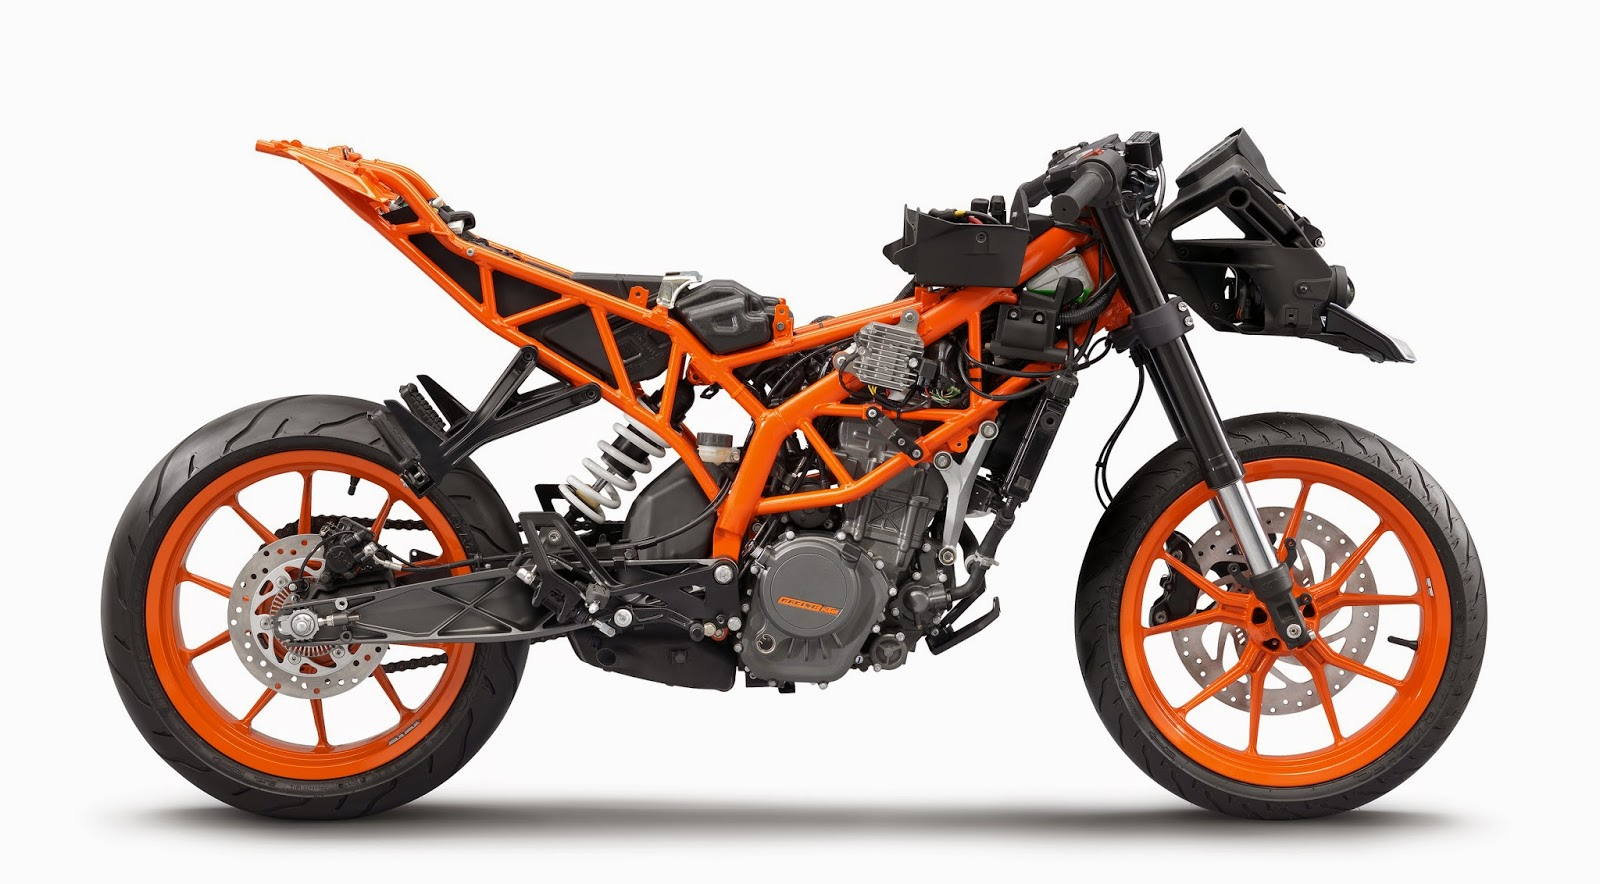 KTM RC200 - Tubular space frame